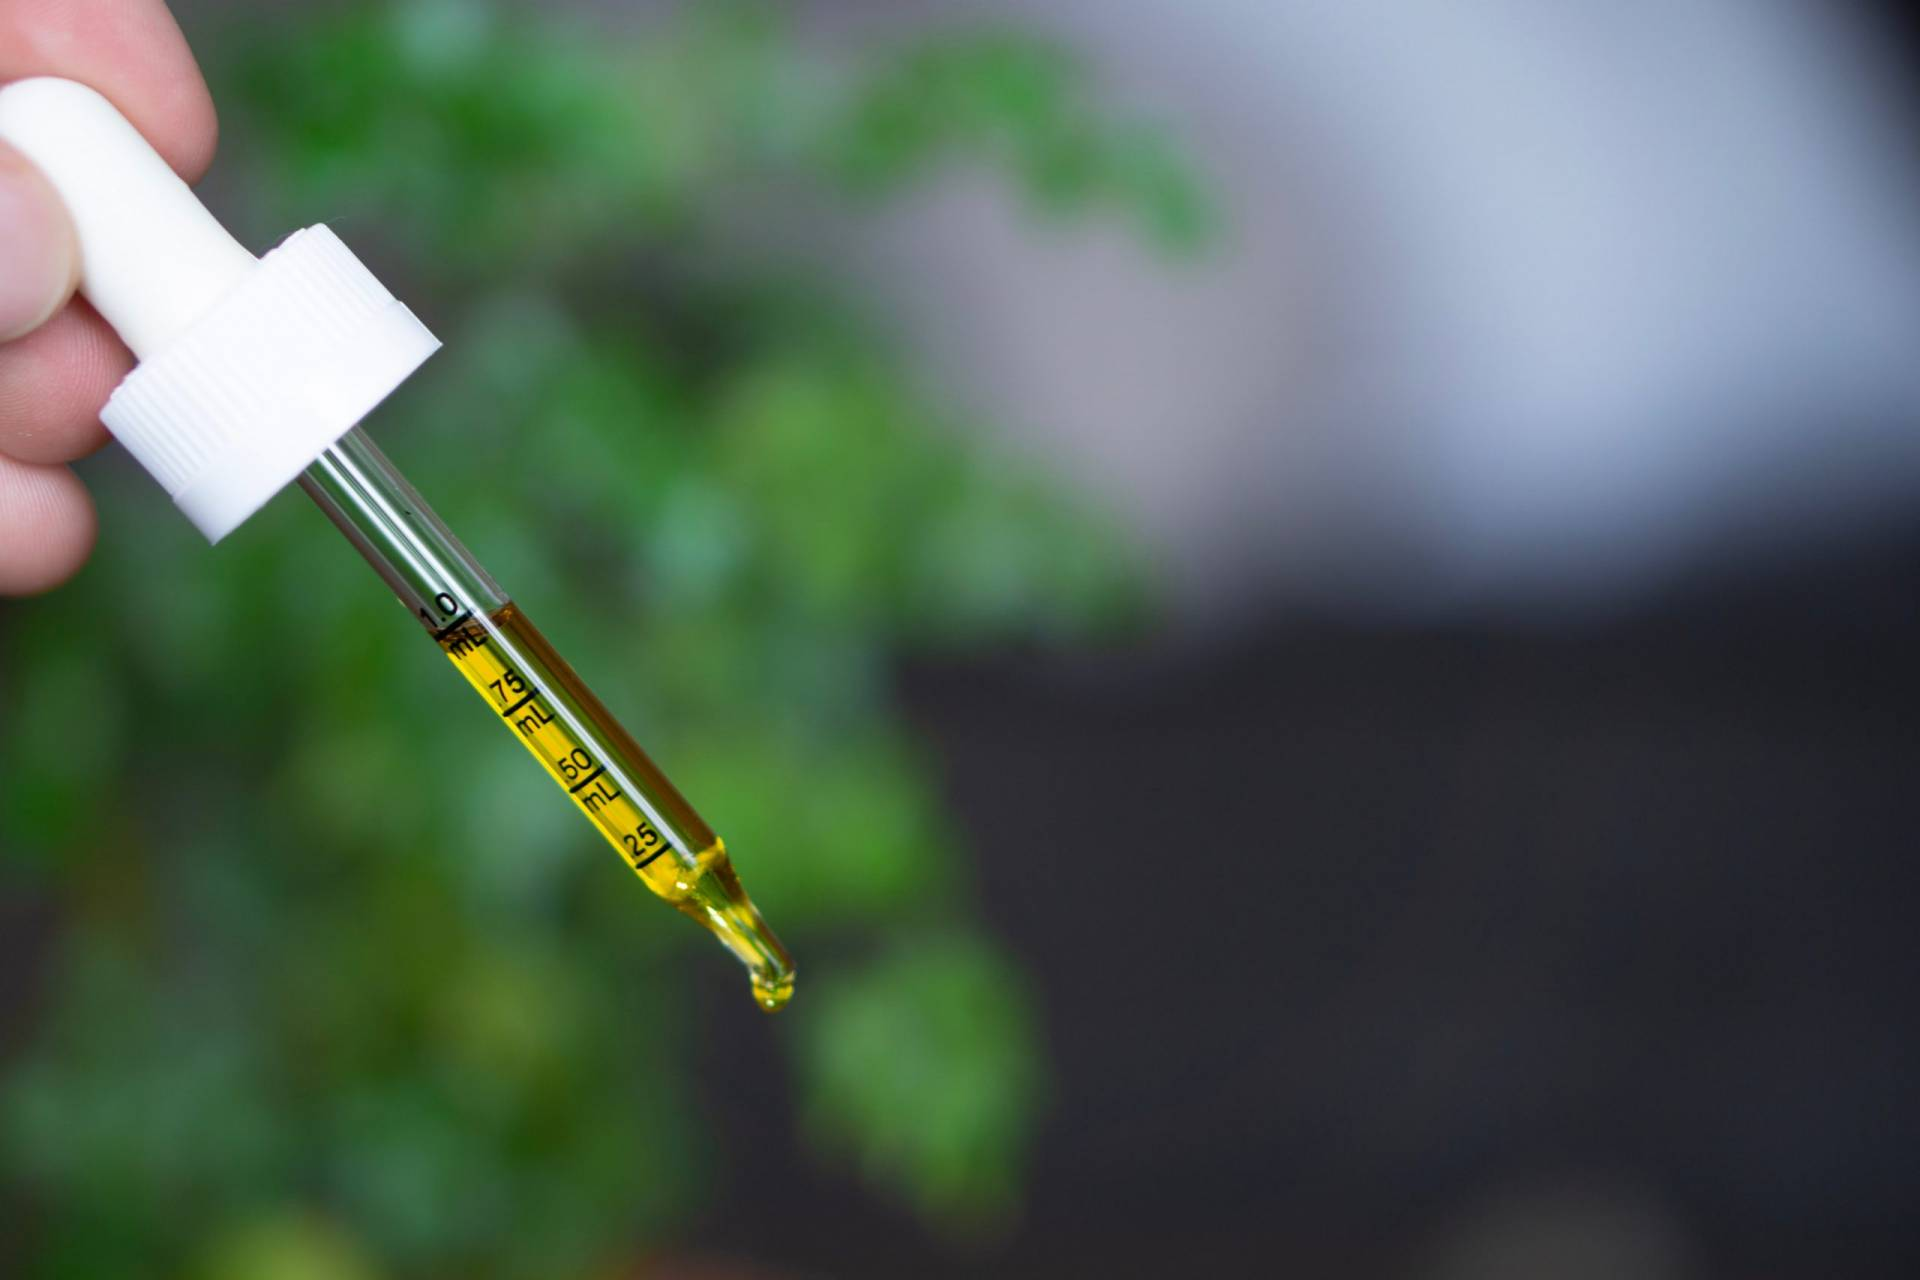 With CBD Market Booming, Let's Look Ahead